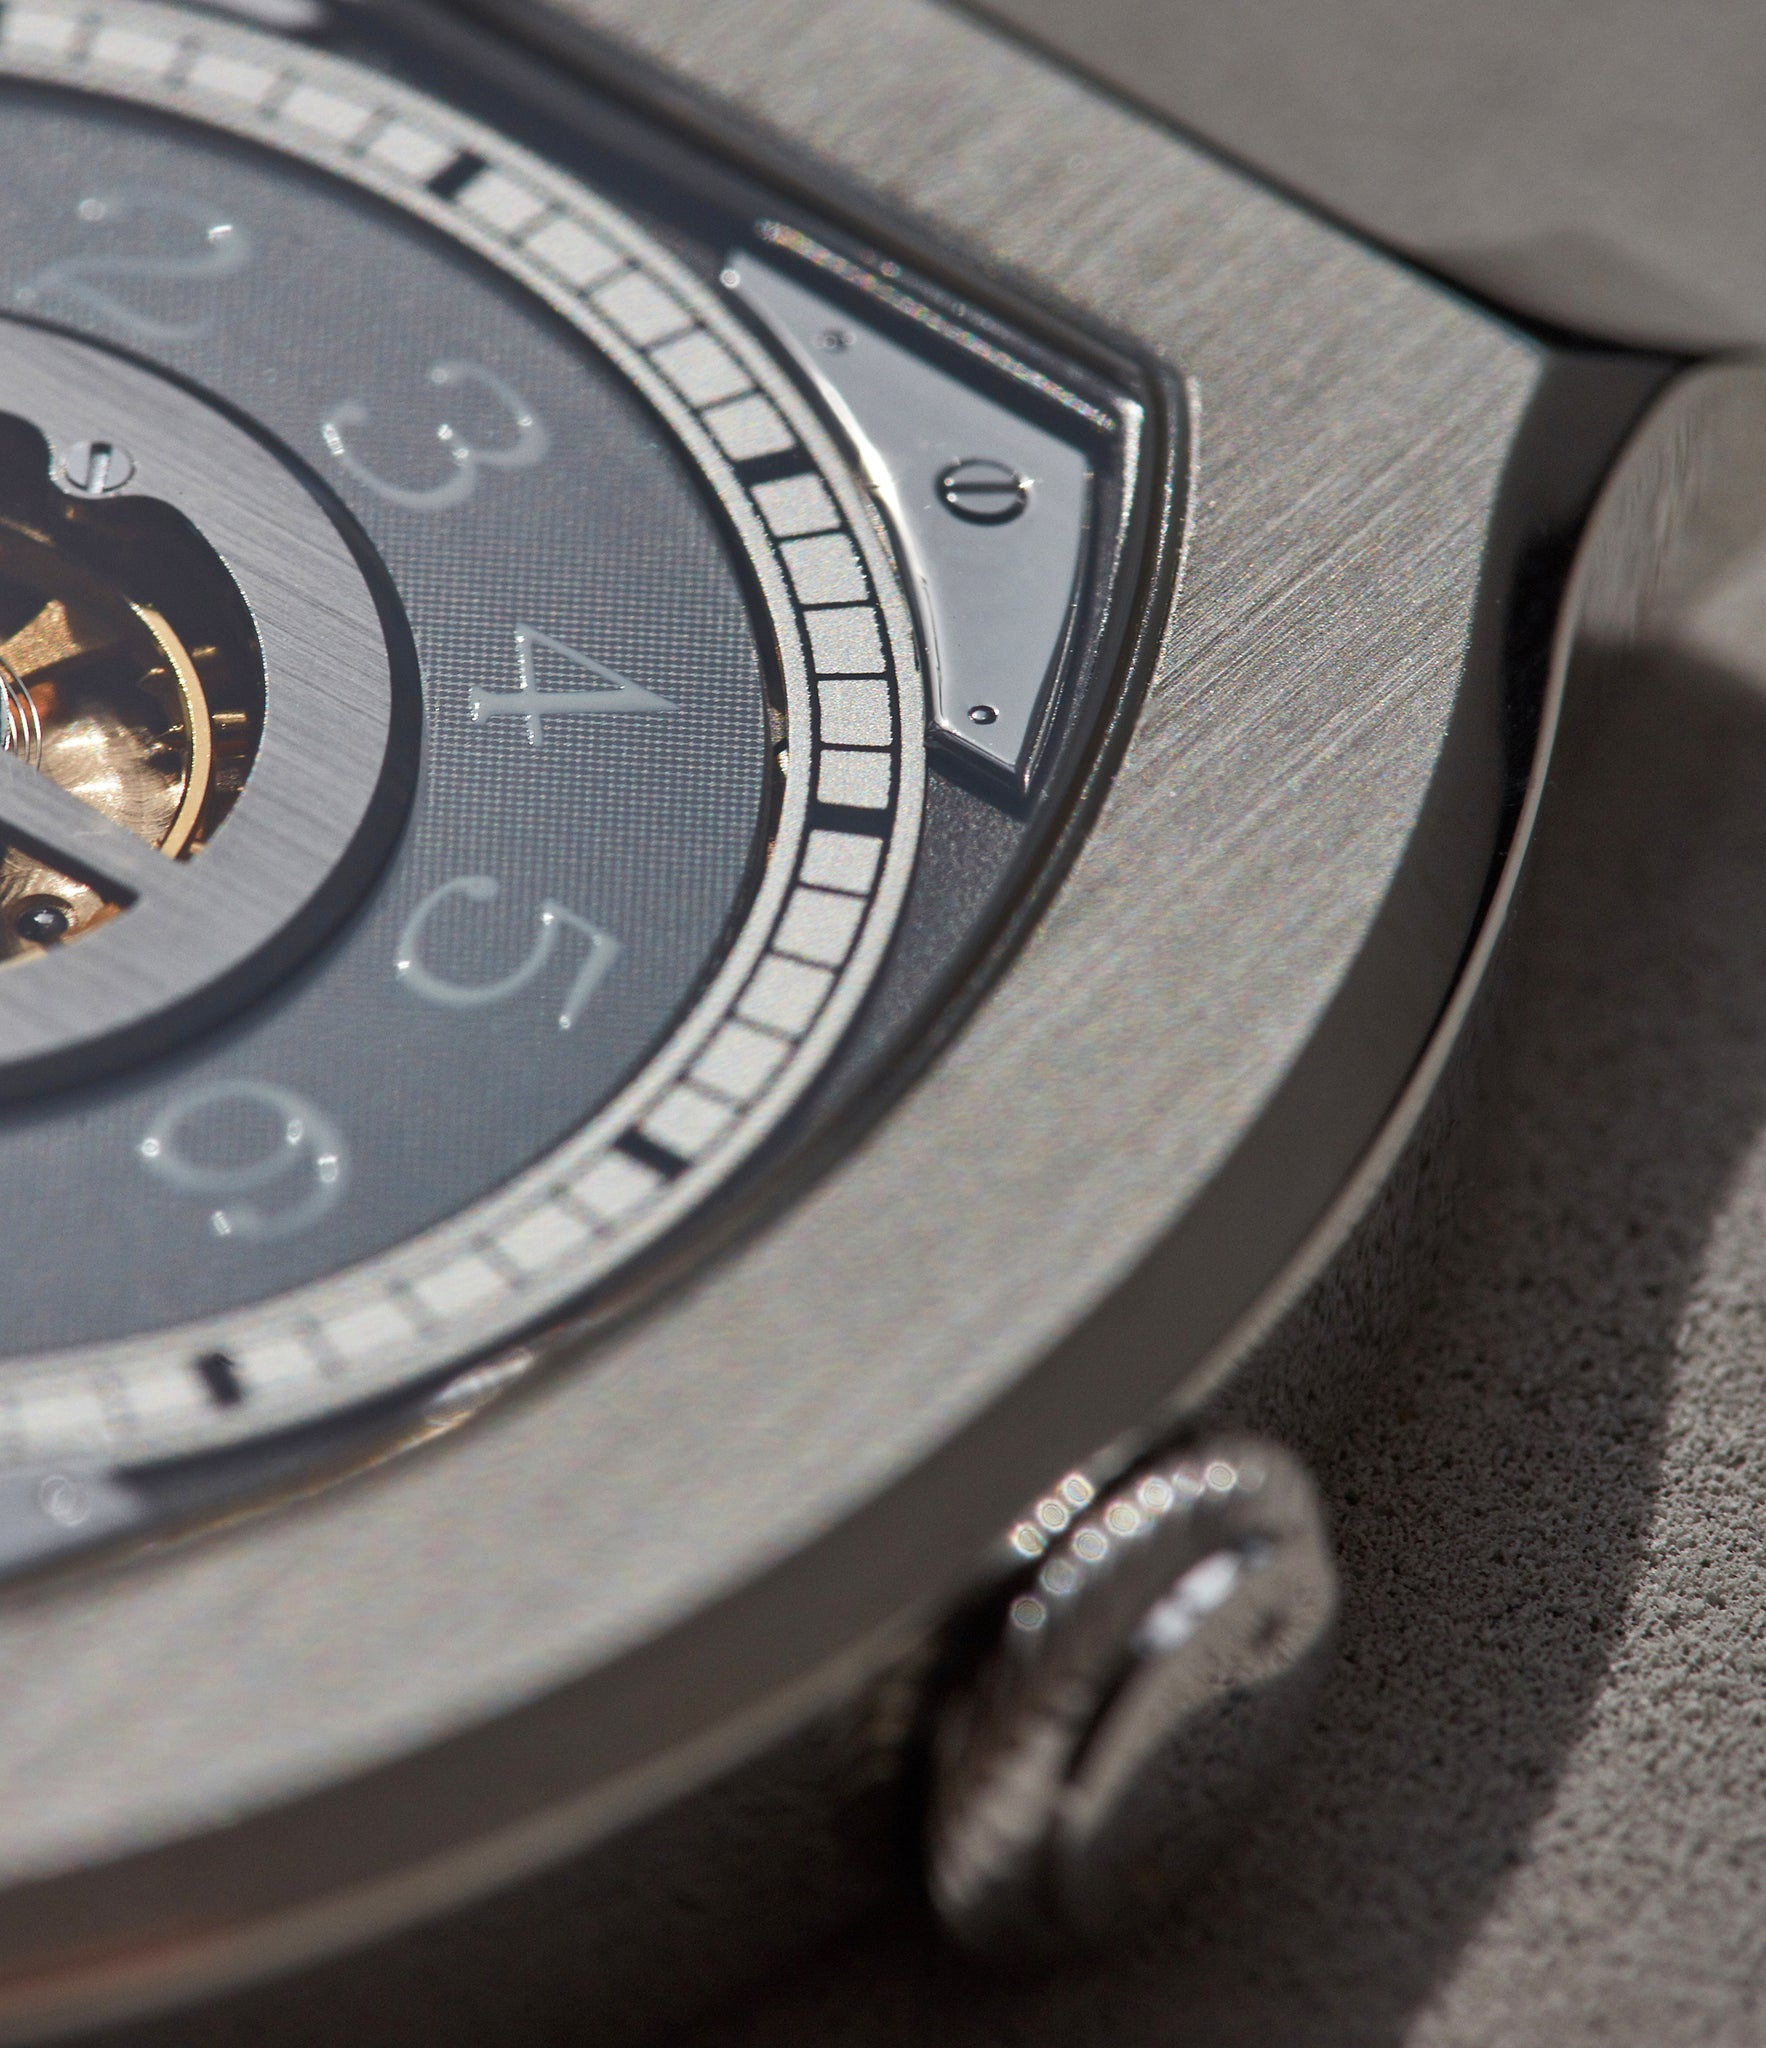 closer look at the Vagabondage I dial configuration.